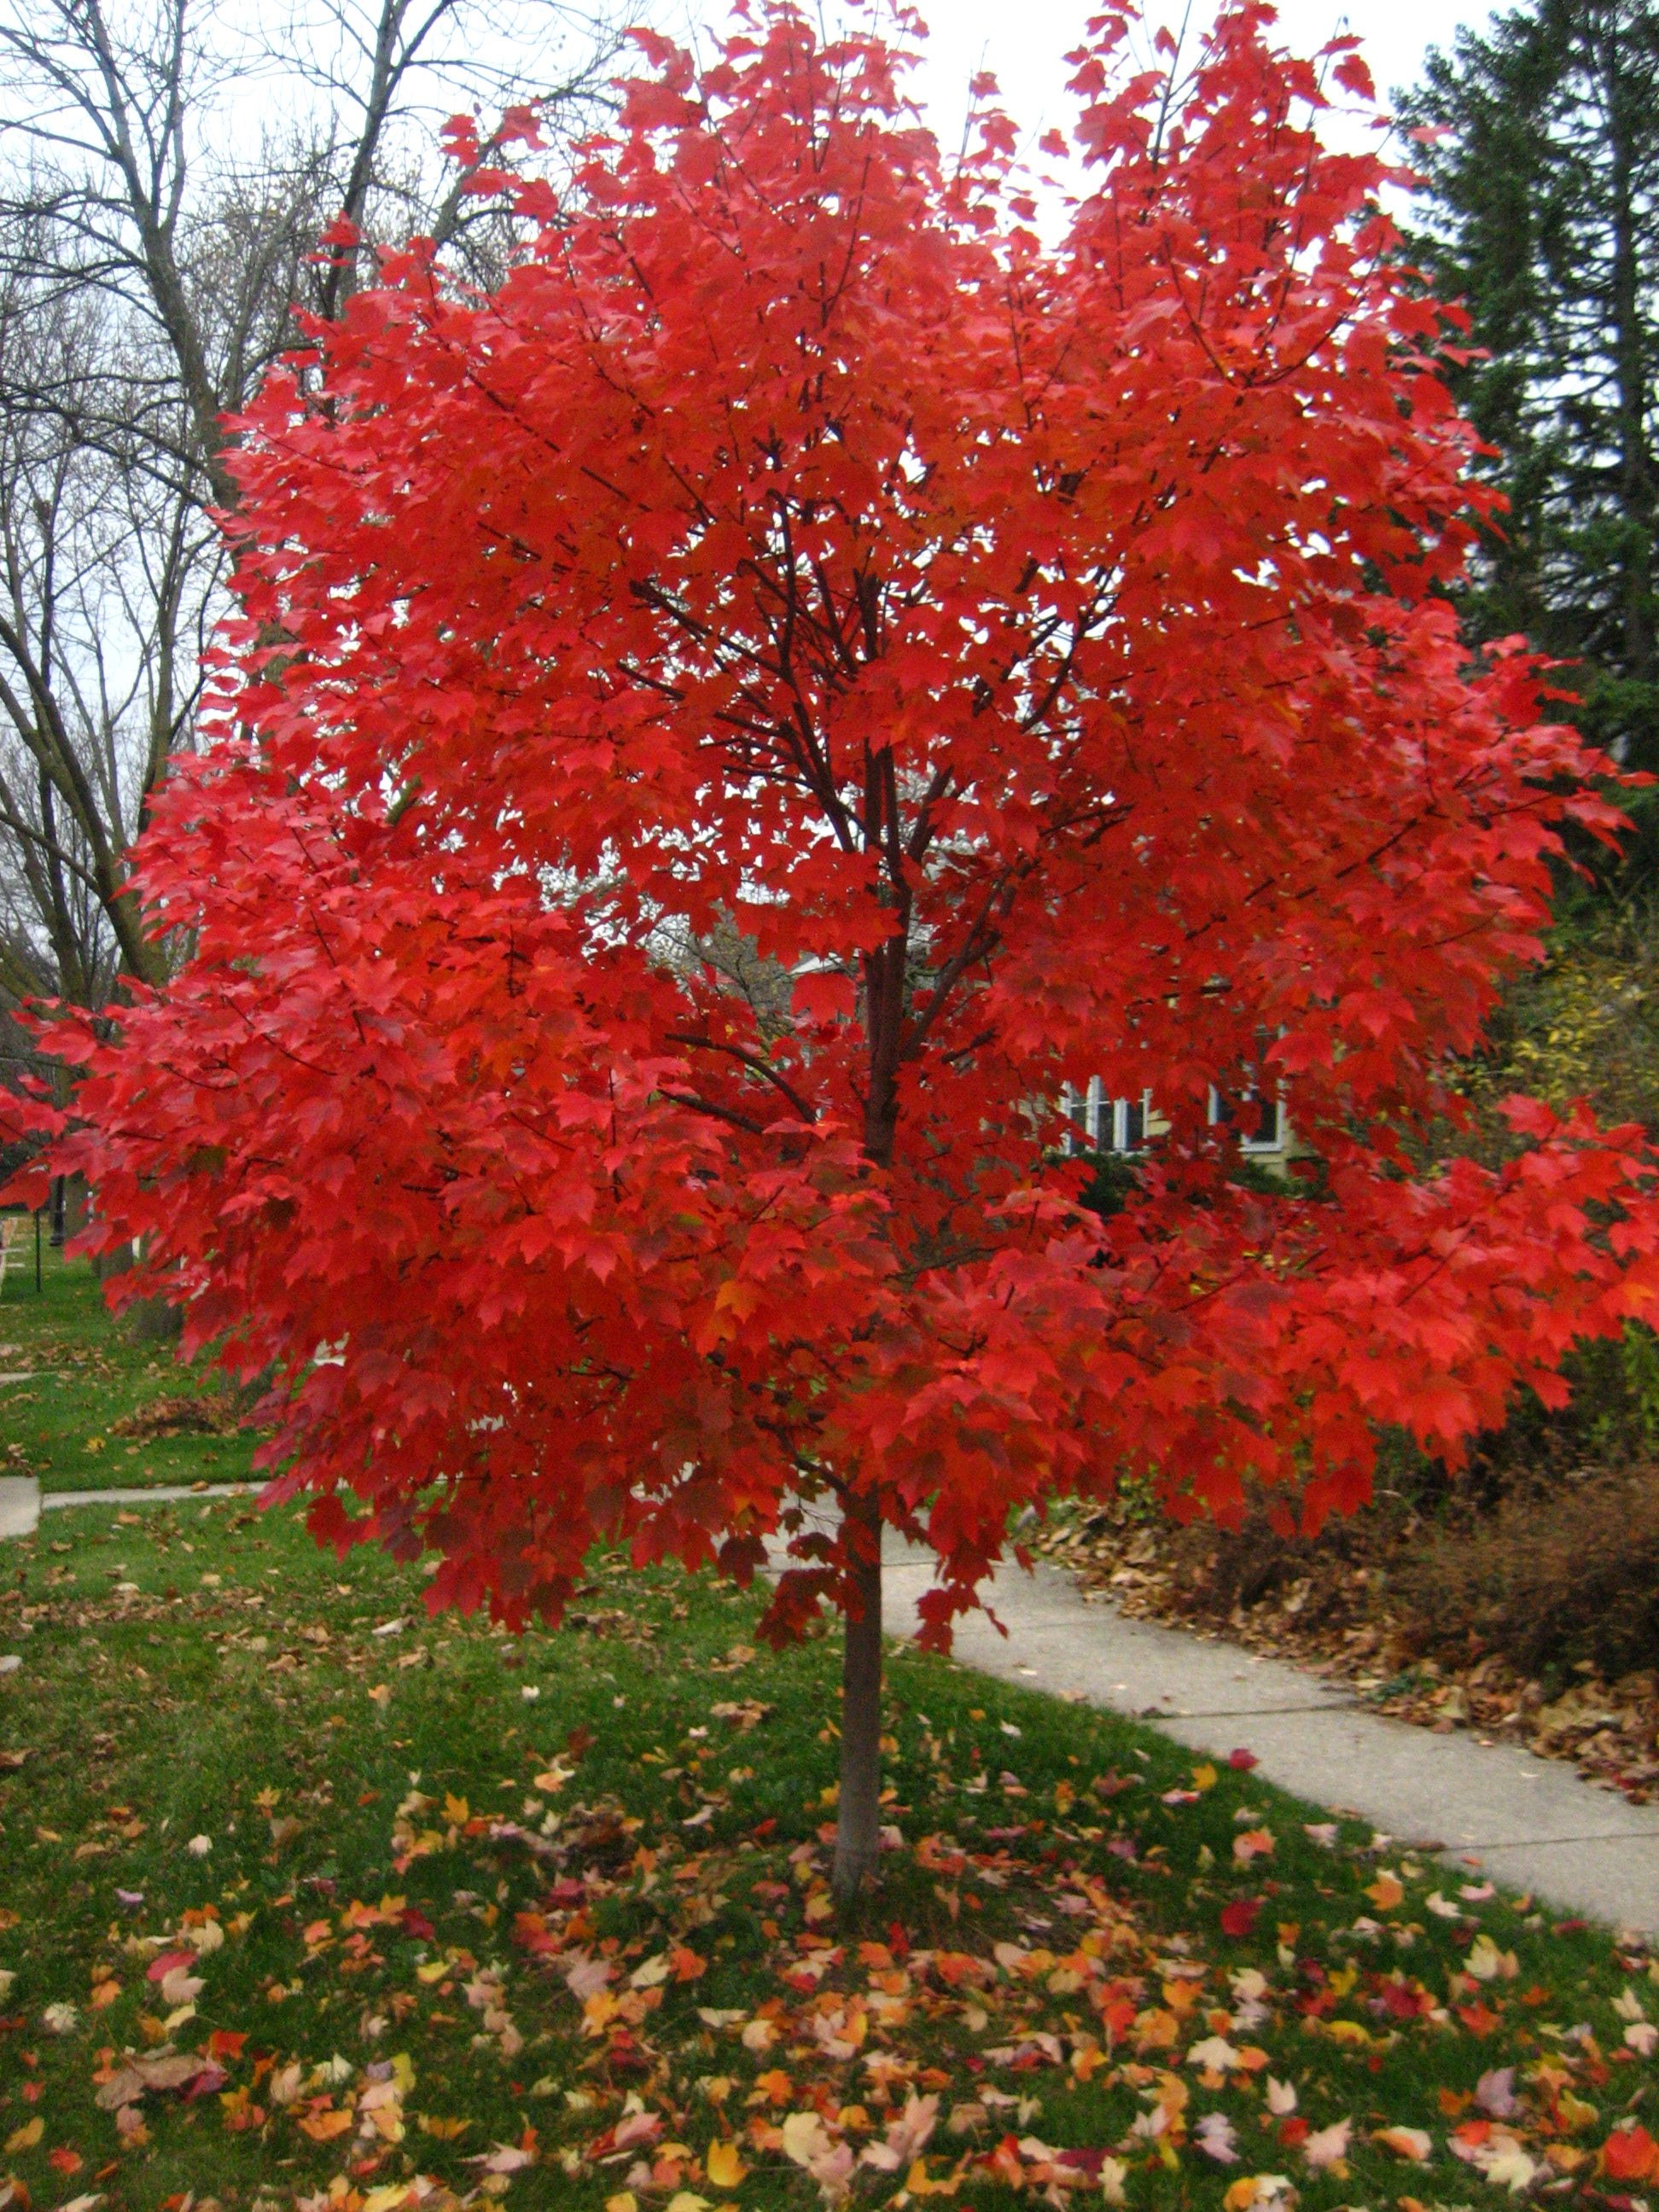 Autumn Blaze Maple Available At Fannin Tree Farm In Frisco Tx 35 Tall Good For Front Yard